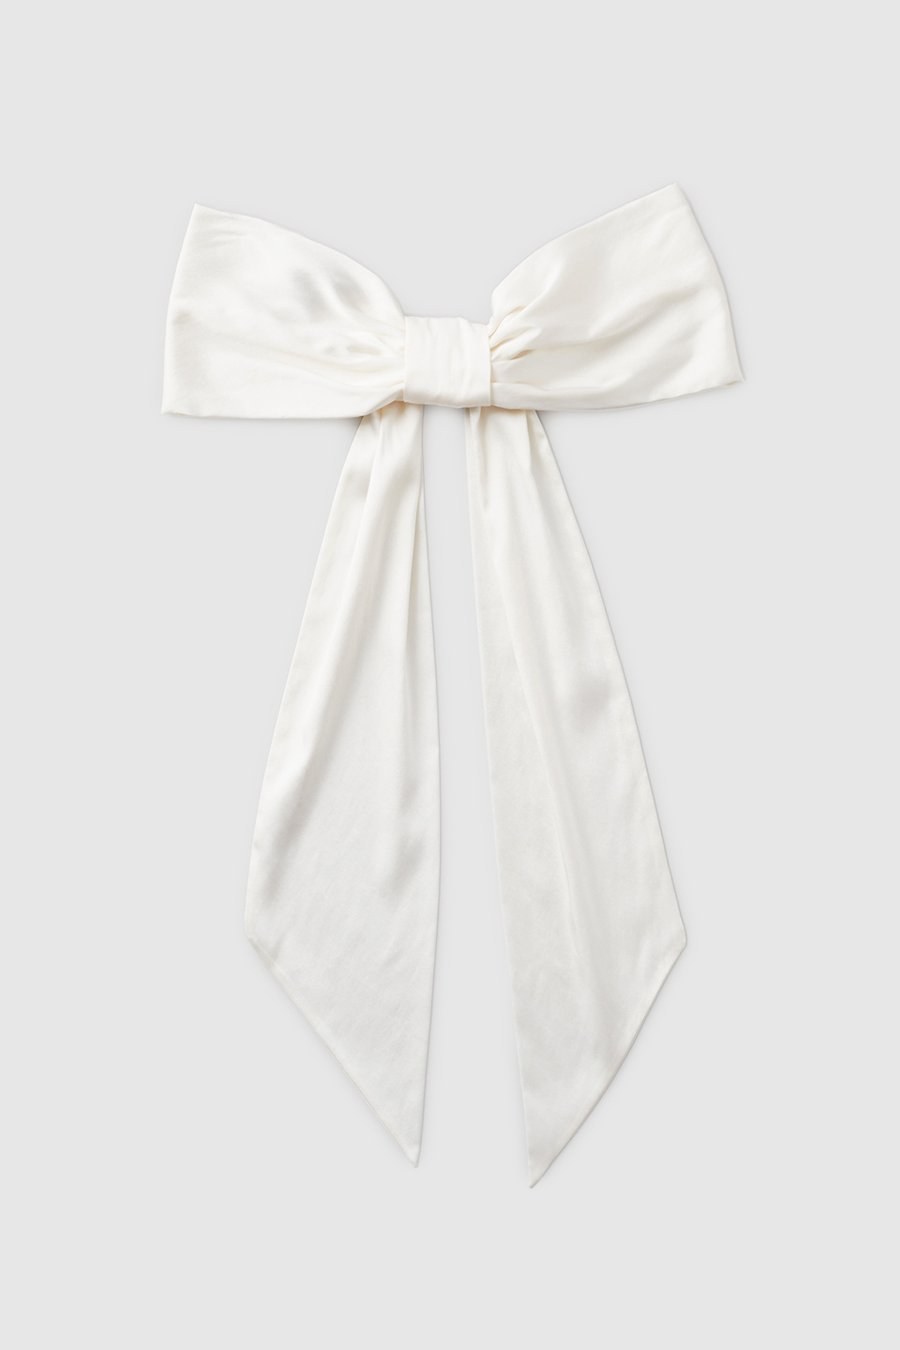 Butt Bow Ivory - The Beach Bride by Chic Parisien, a destination for beach weddings, bachelorettes and honeymoons